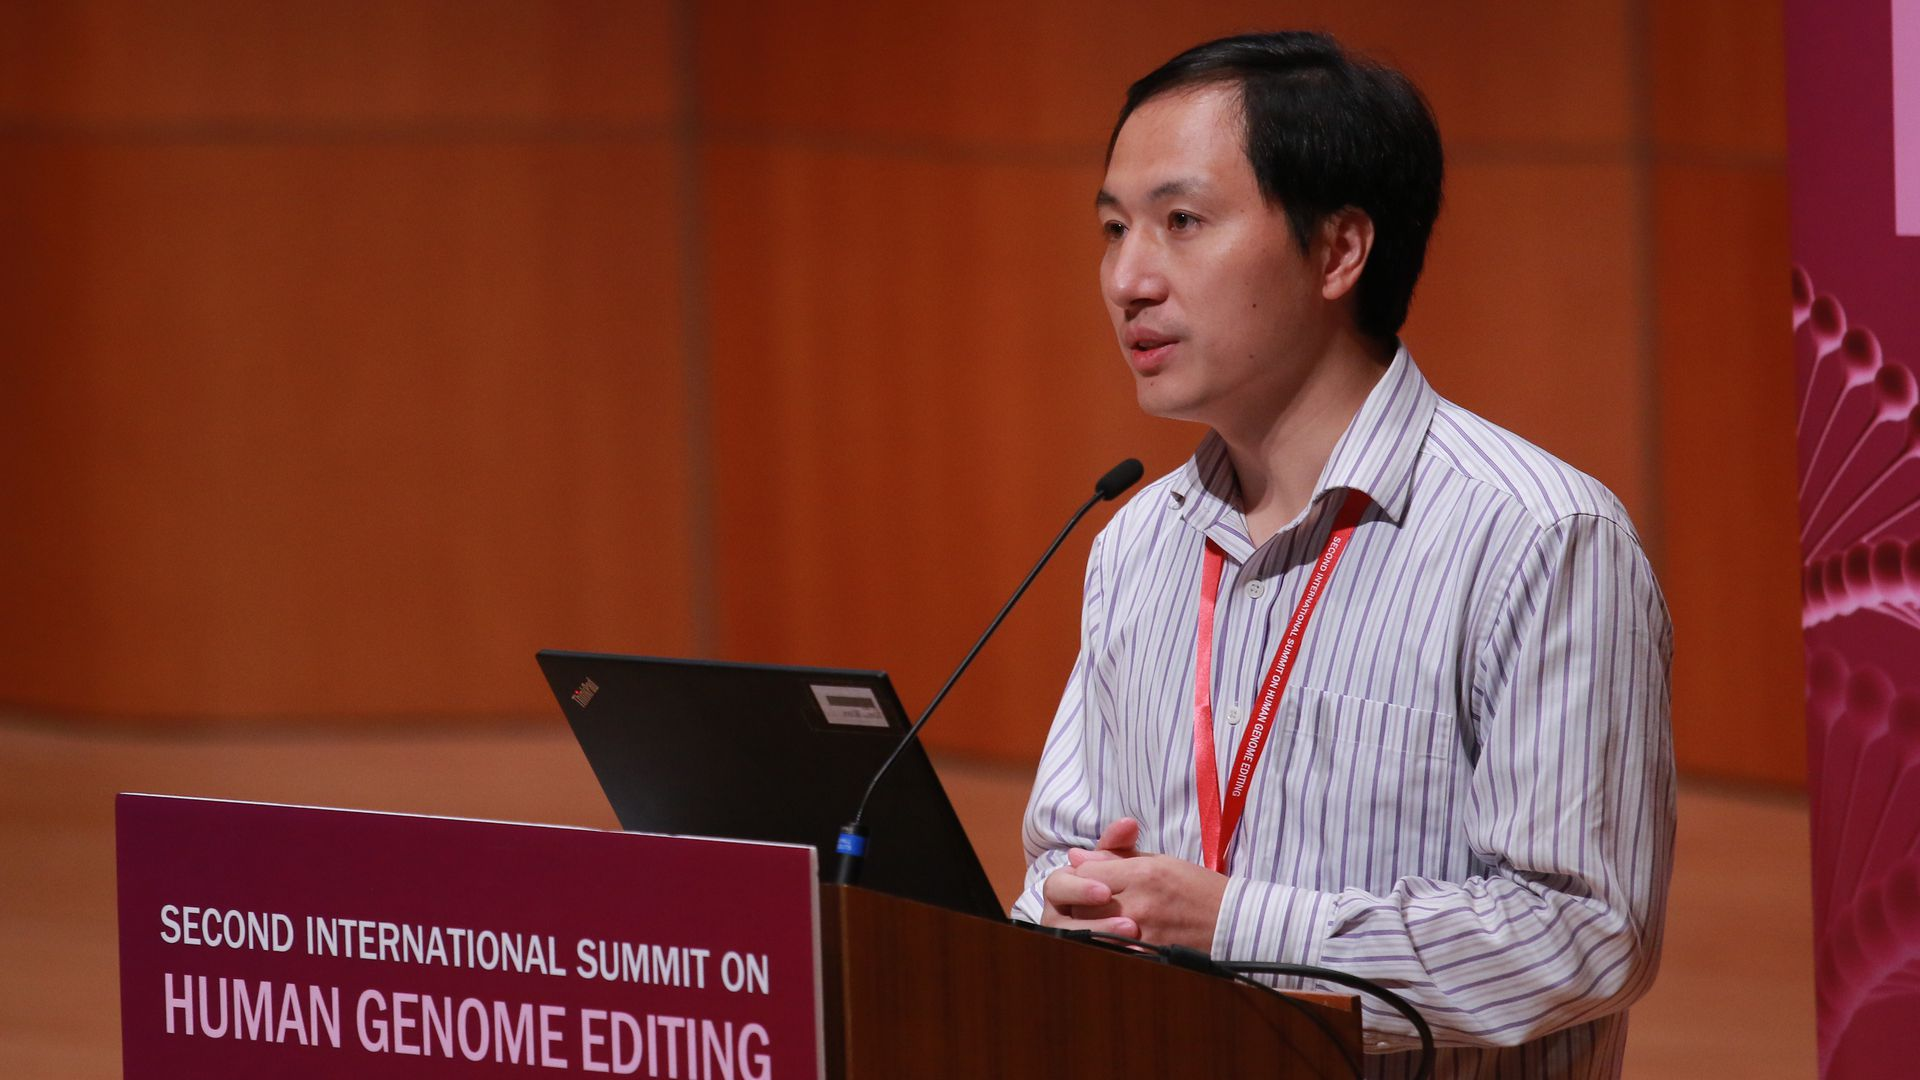 Biological researcher He Jiankui speaking at the Second International Summit on Human Genome Editing at the University of Hong Kong in November.